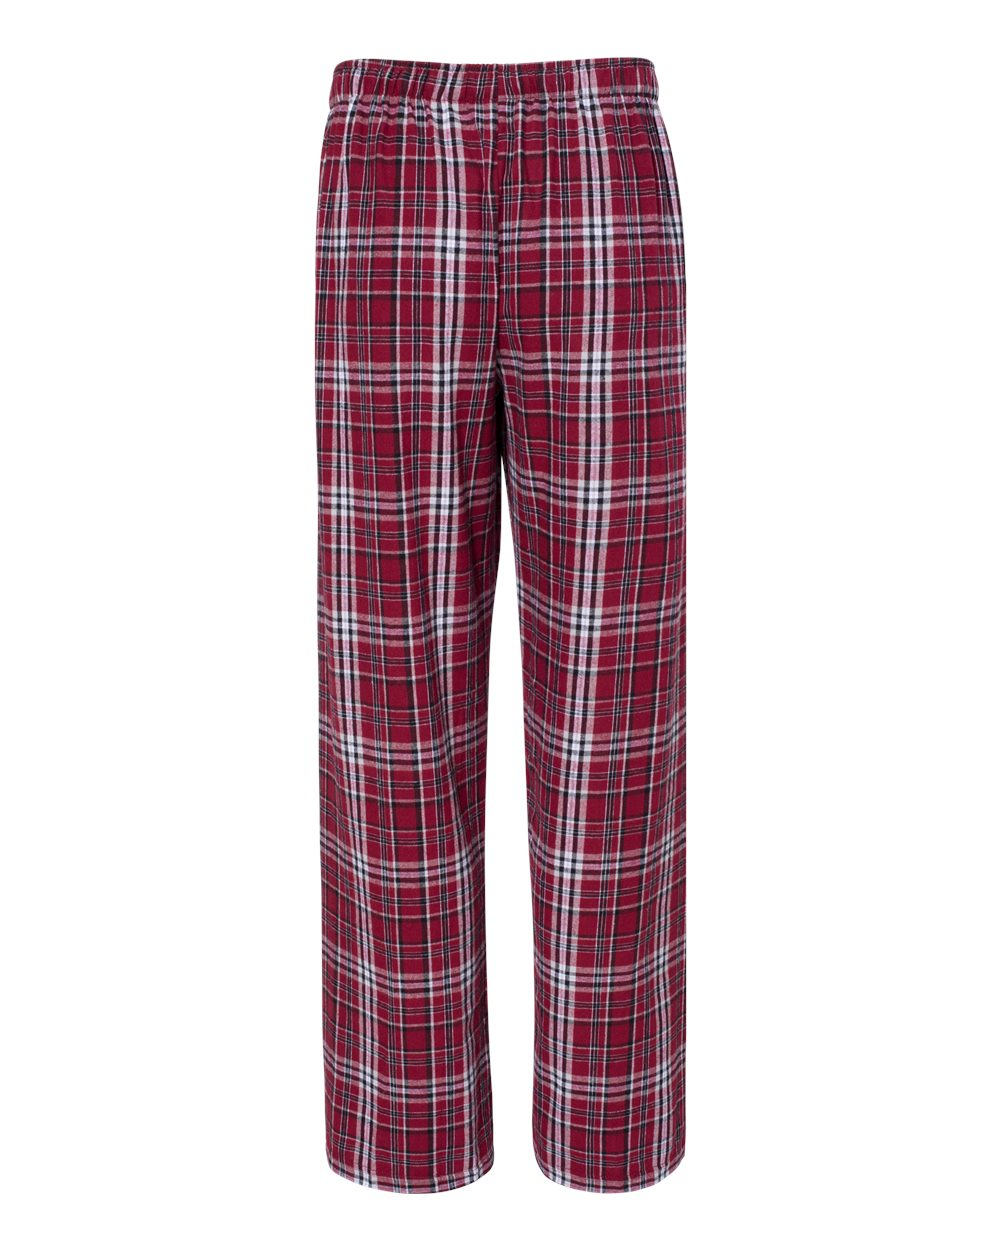 Boxercraft-Unisex-Flannel-Pants-With-Pockets-Pajama-Pants-F20-up-to-2XL thumbnail 16